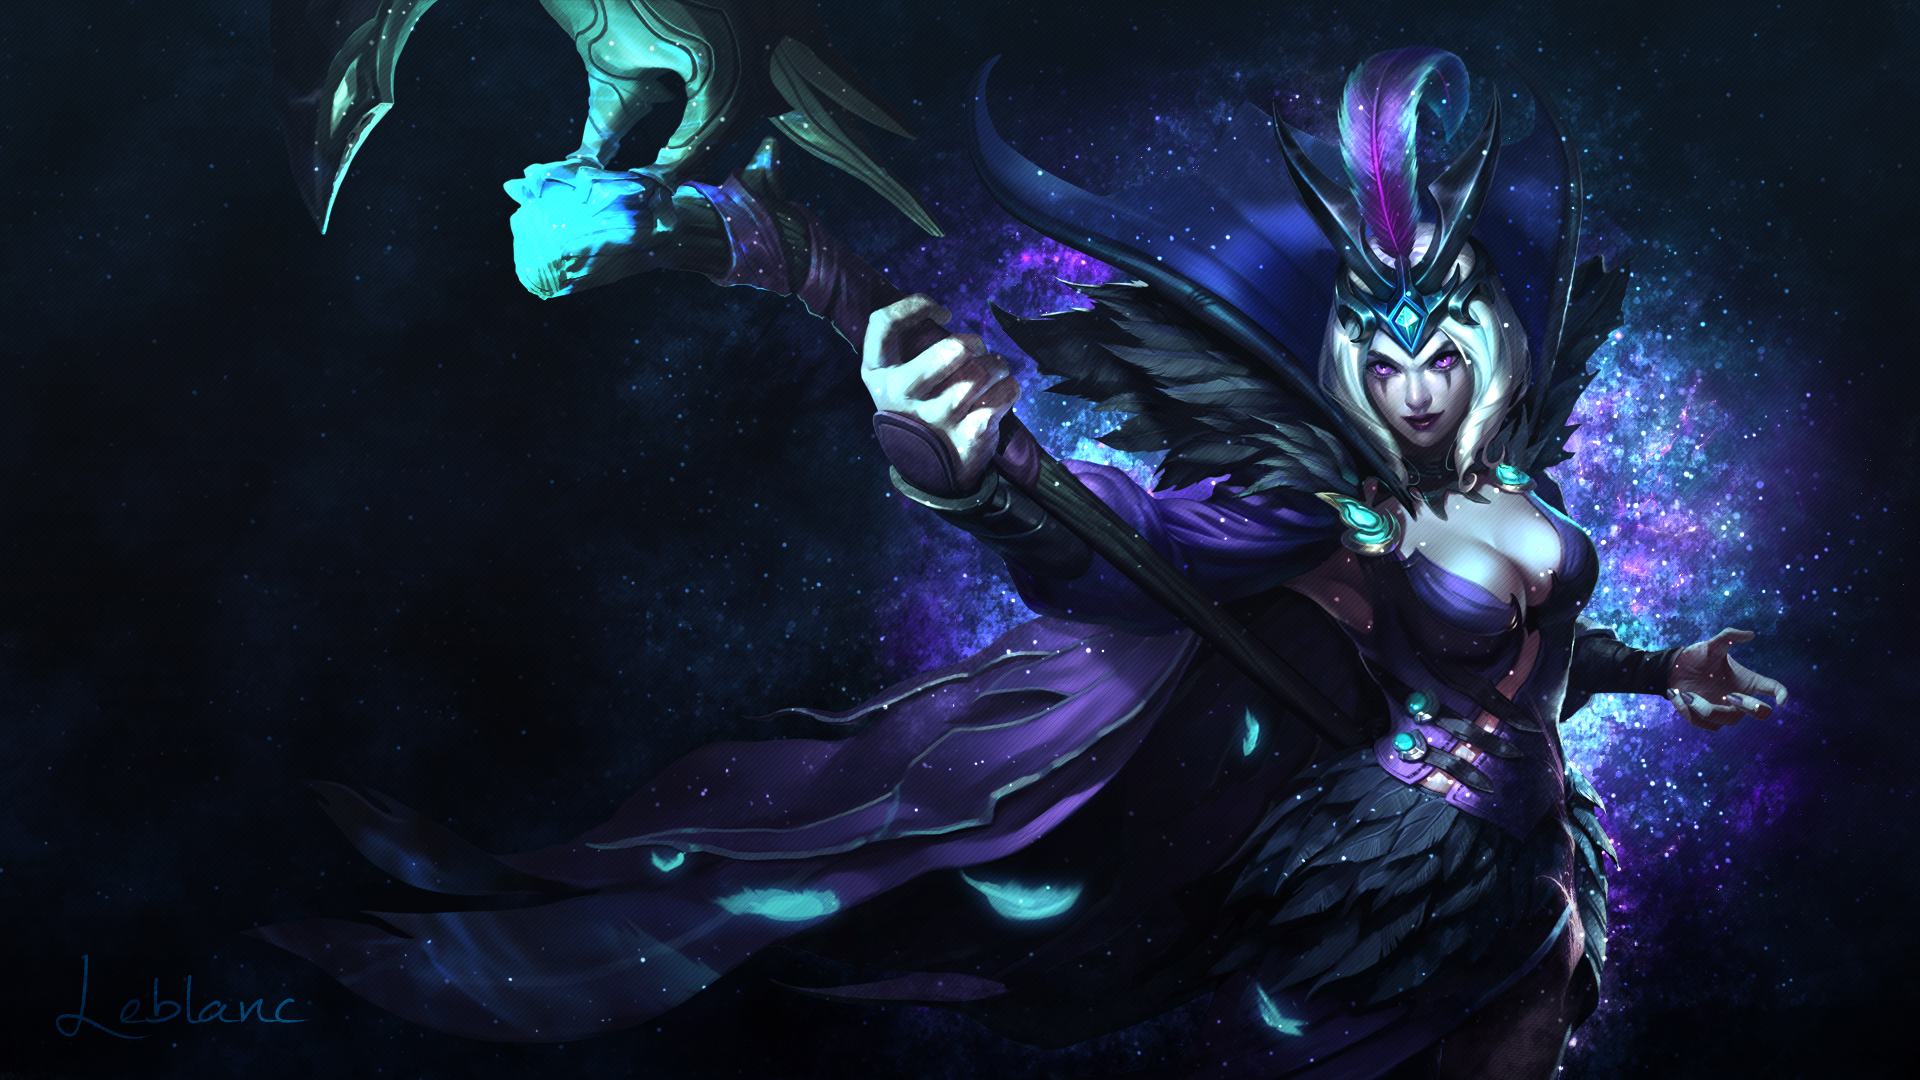 leblanc chinese art - photo #15